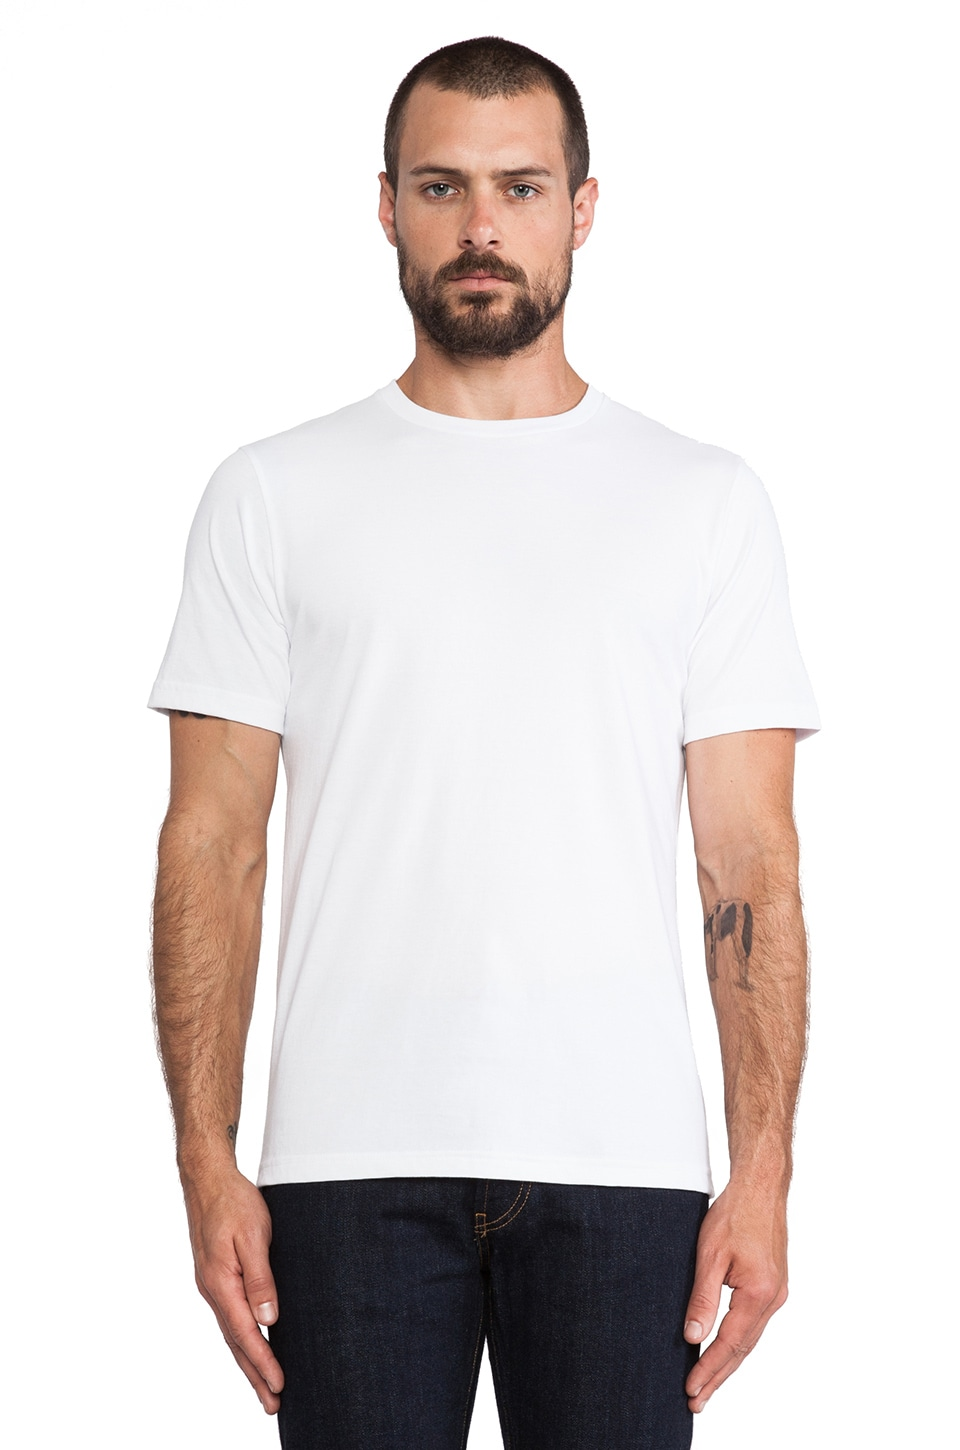 United Stock Dry Goods 40-Single T-Shirt in White